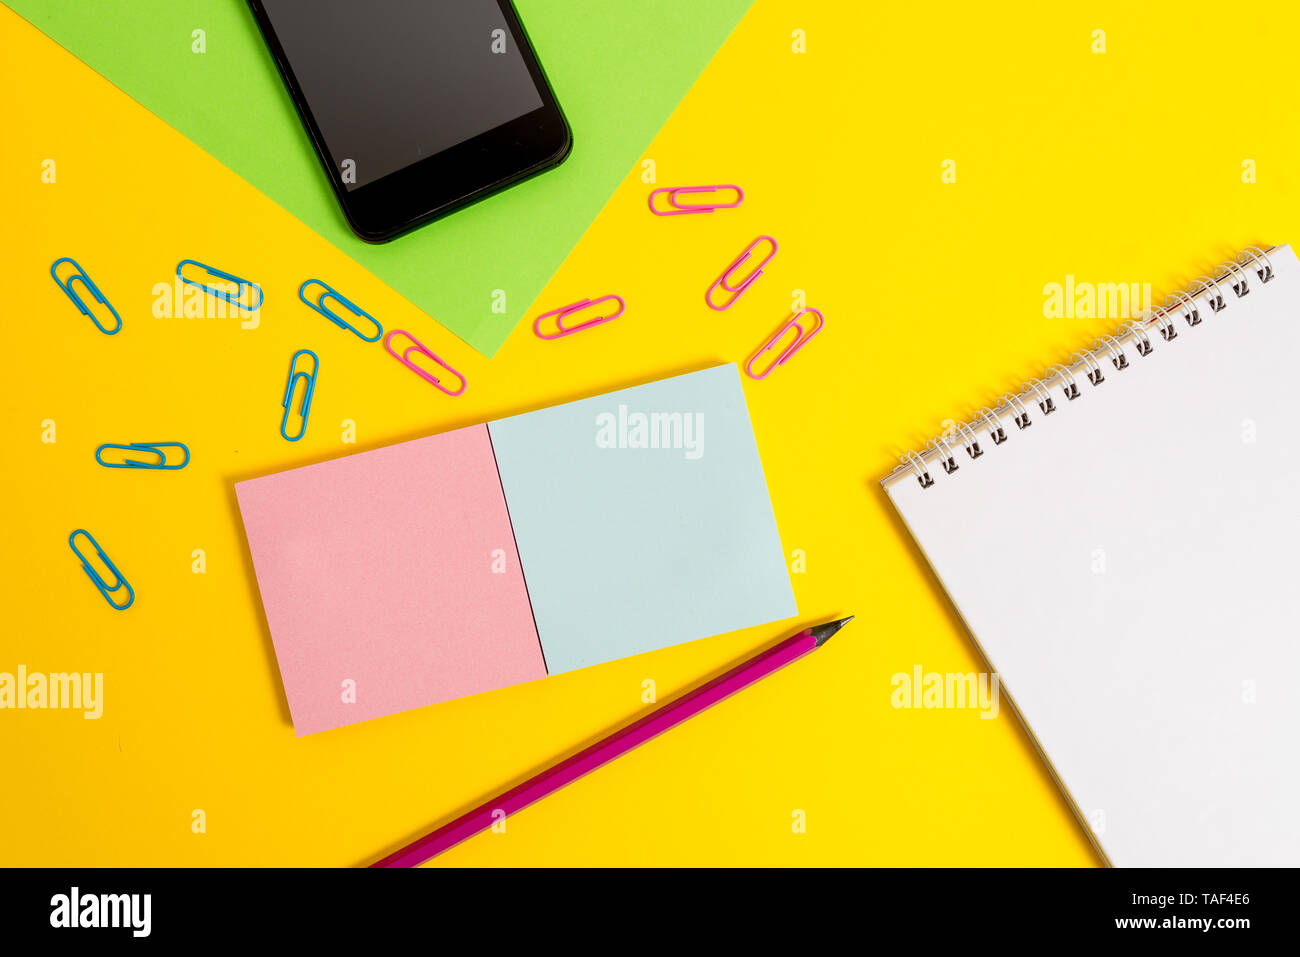 Square blank sticky notepads pencil clips smartphone sheet color background - Stock Image